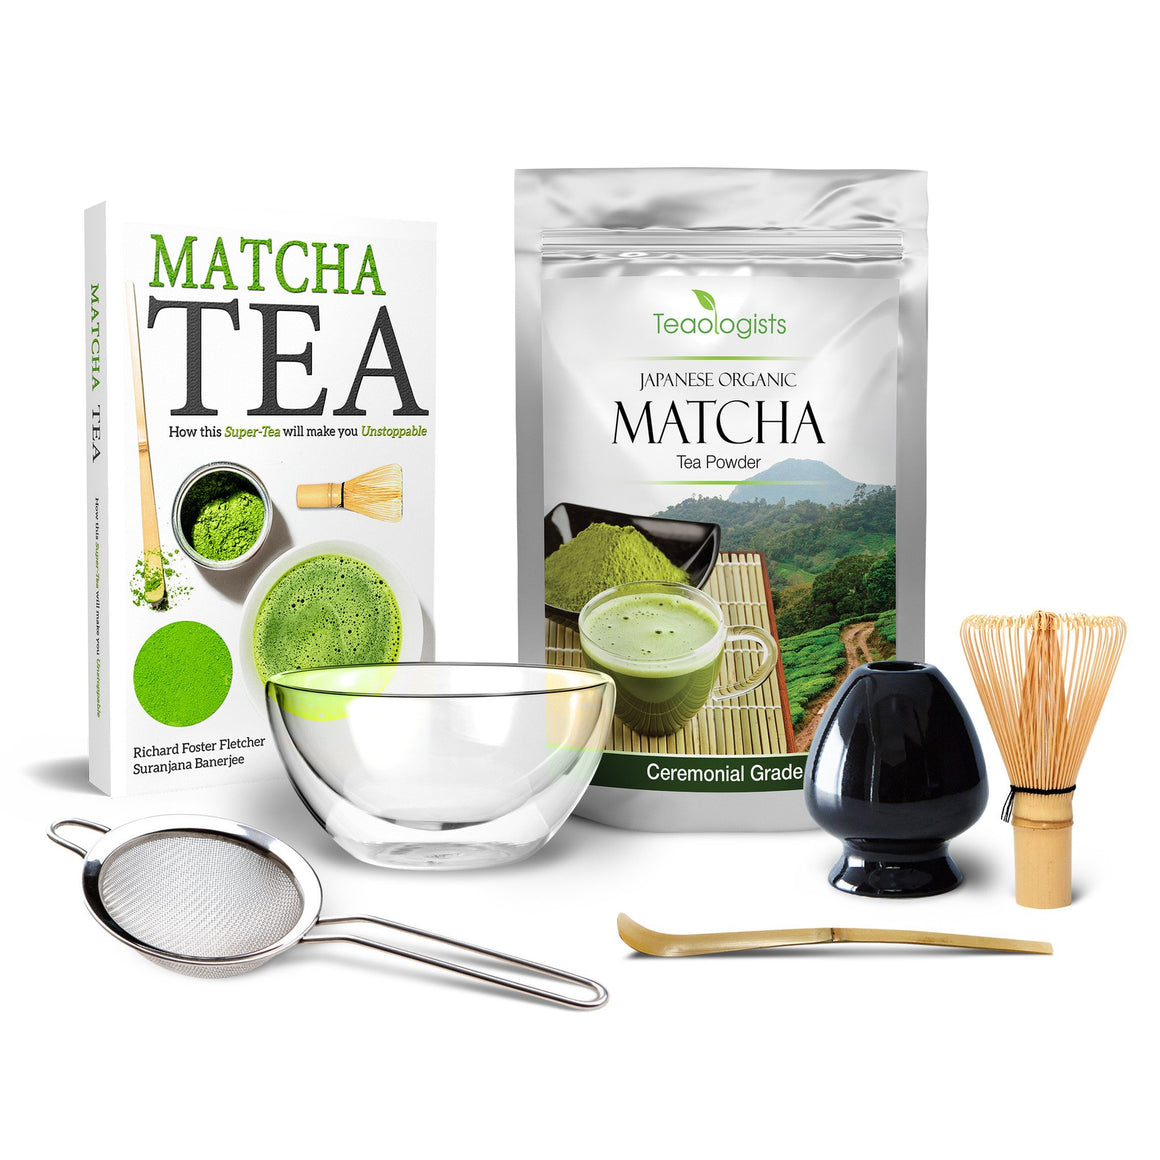 Professional Matcha Tea Set by Teaologists: Includes 40g Finest Organic  Matcha, 5✮ rated Matcha Book and authentic Japanese Matcha Teaware - Teaologists - 1